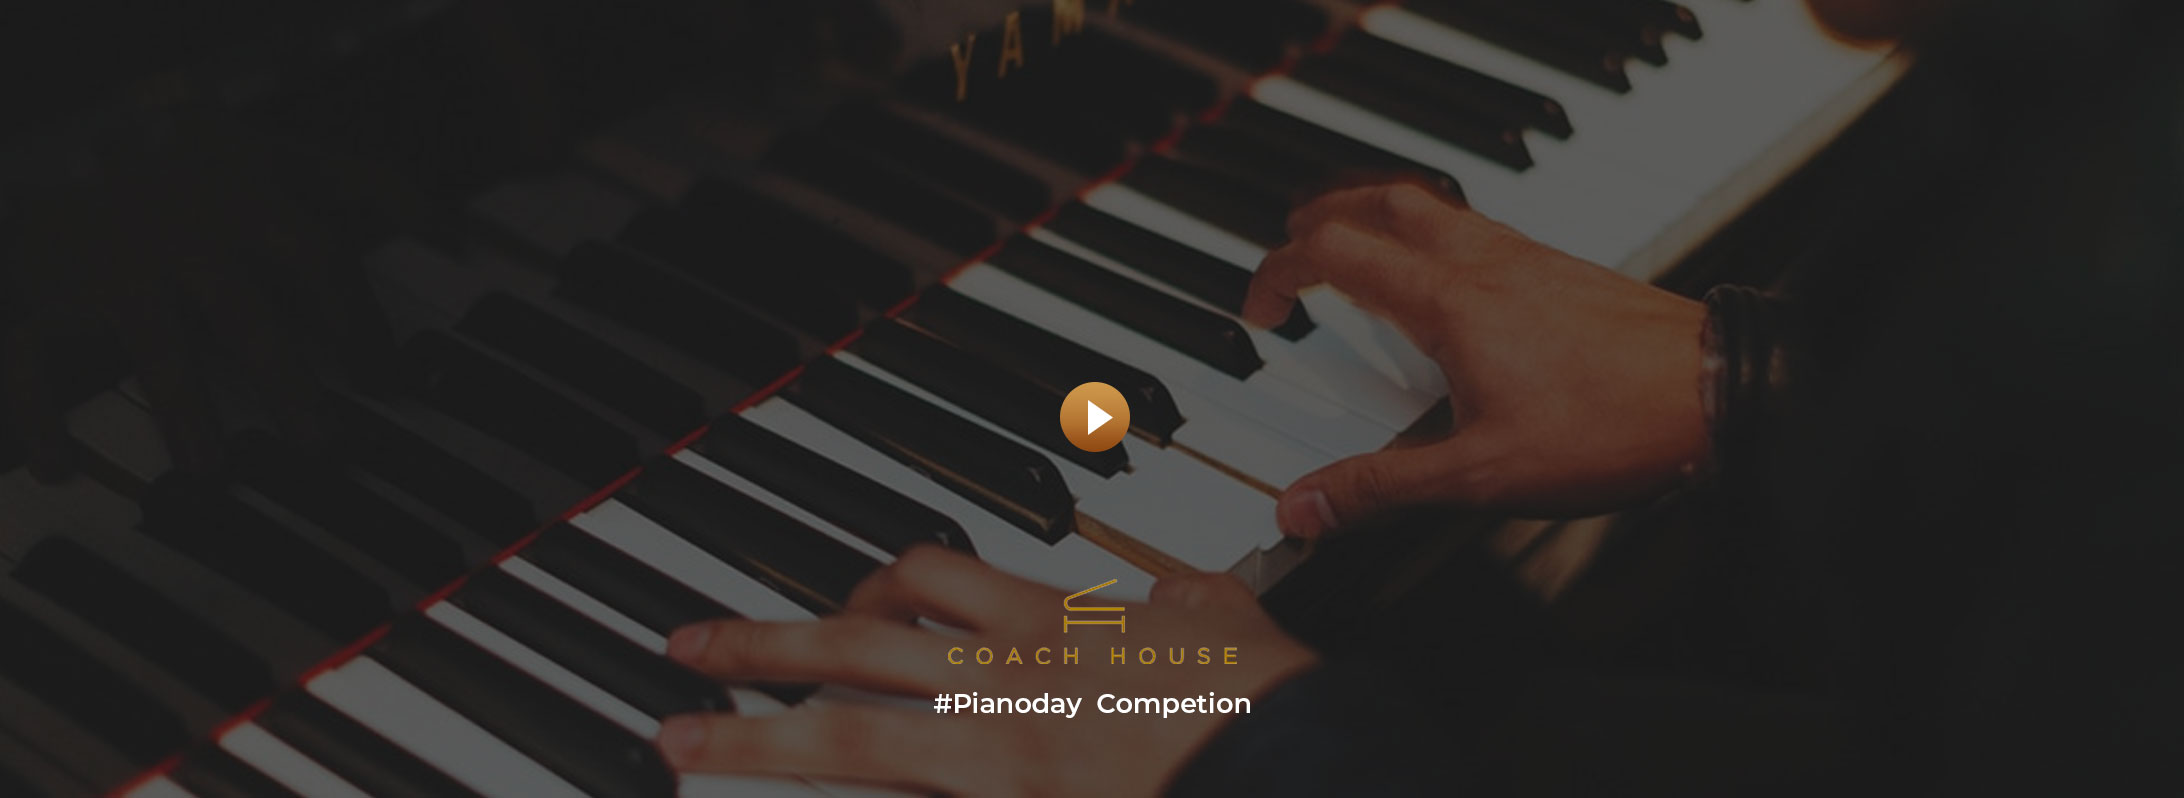 Piano Day Competition - Coach House Pianos